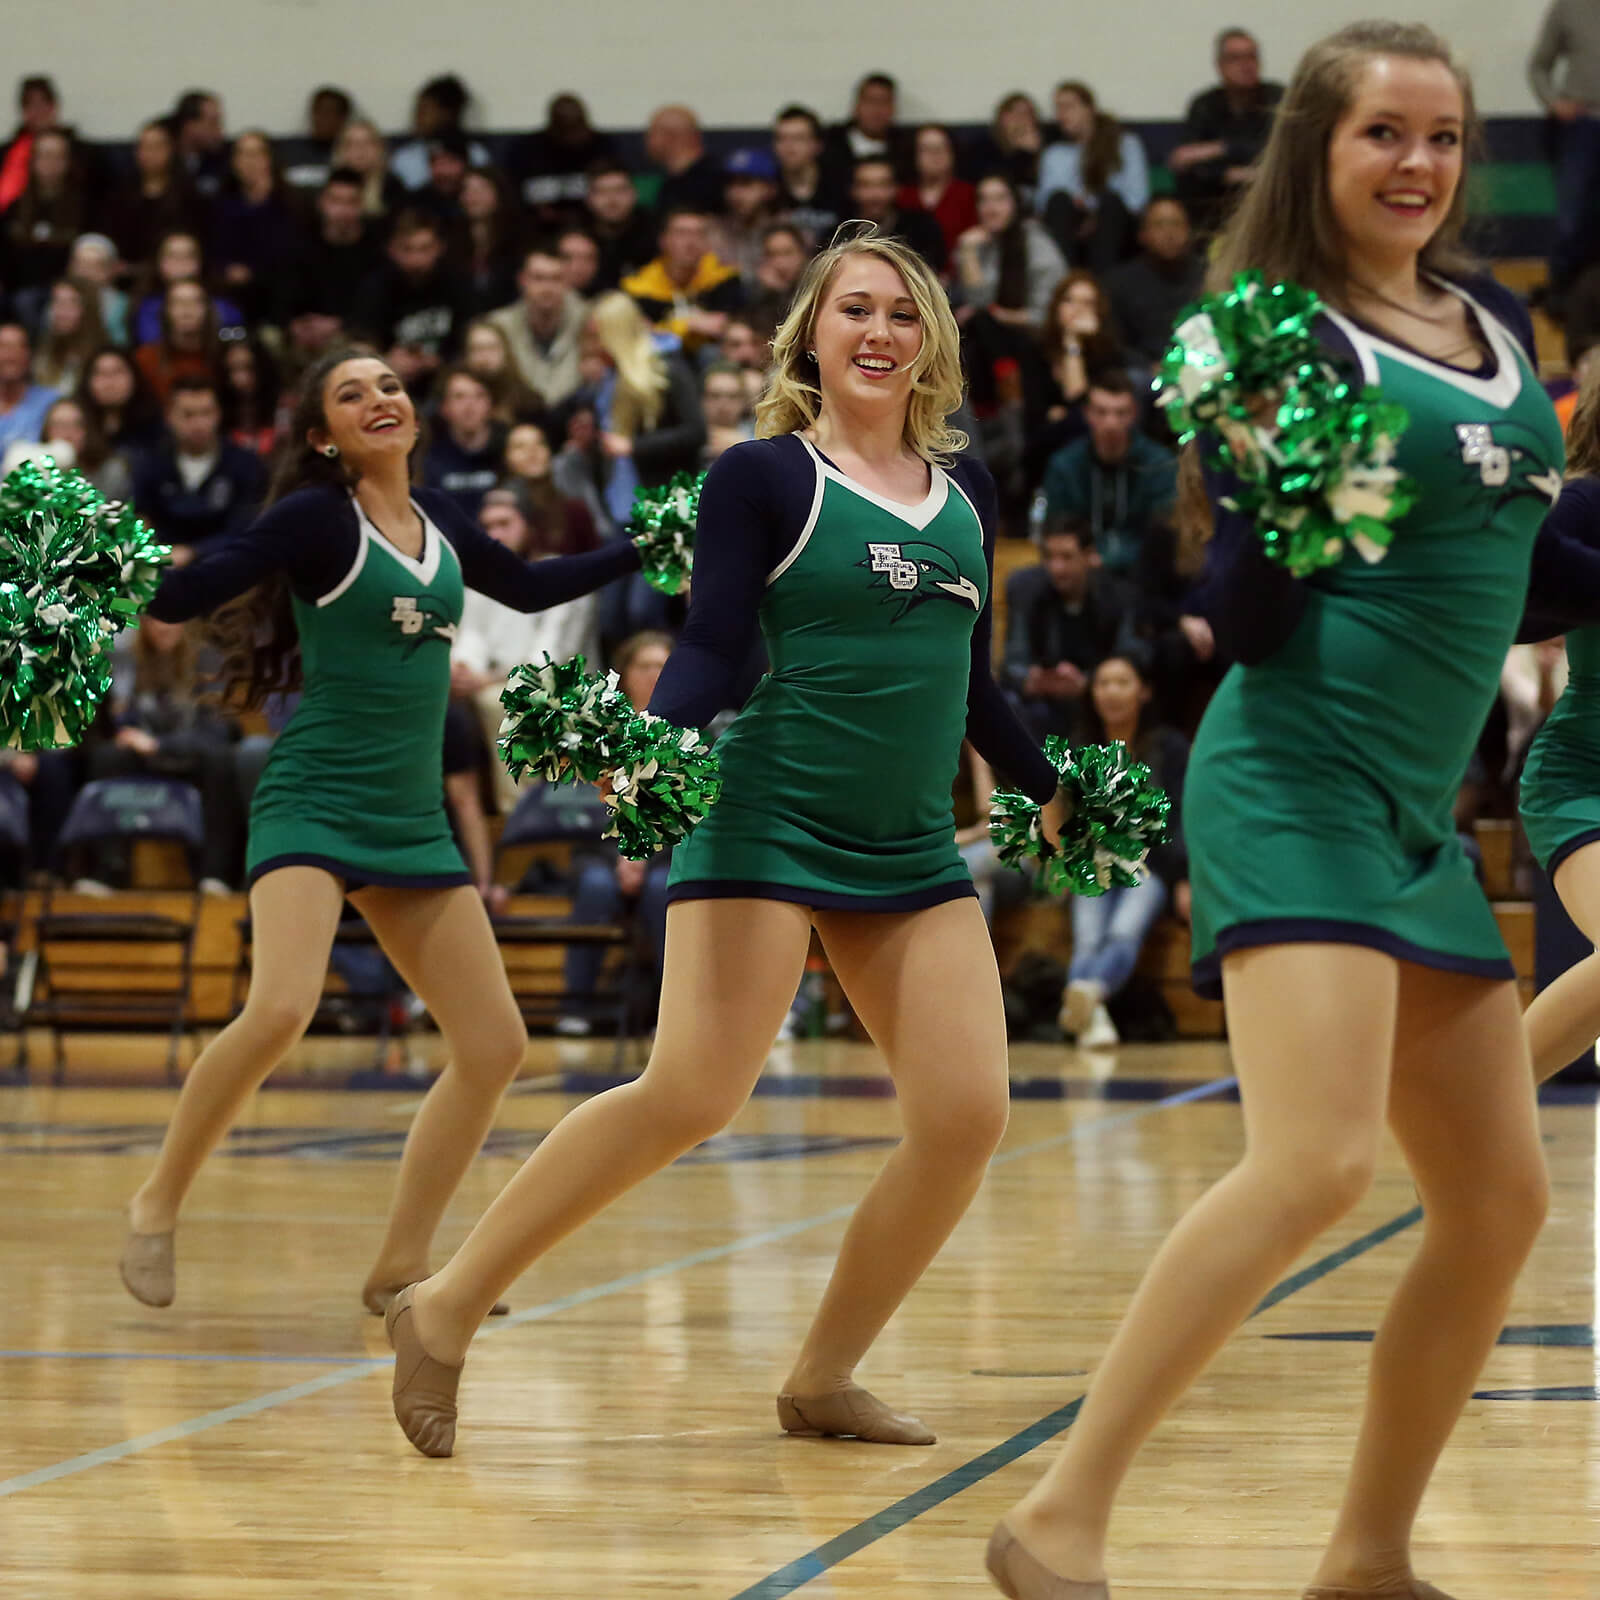 dance team performing pom routine